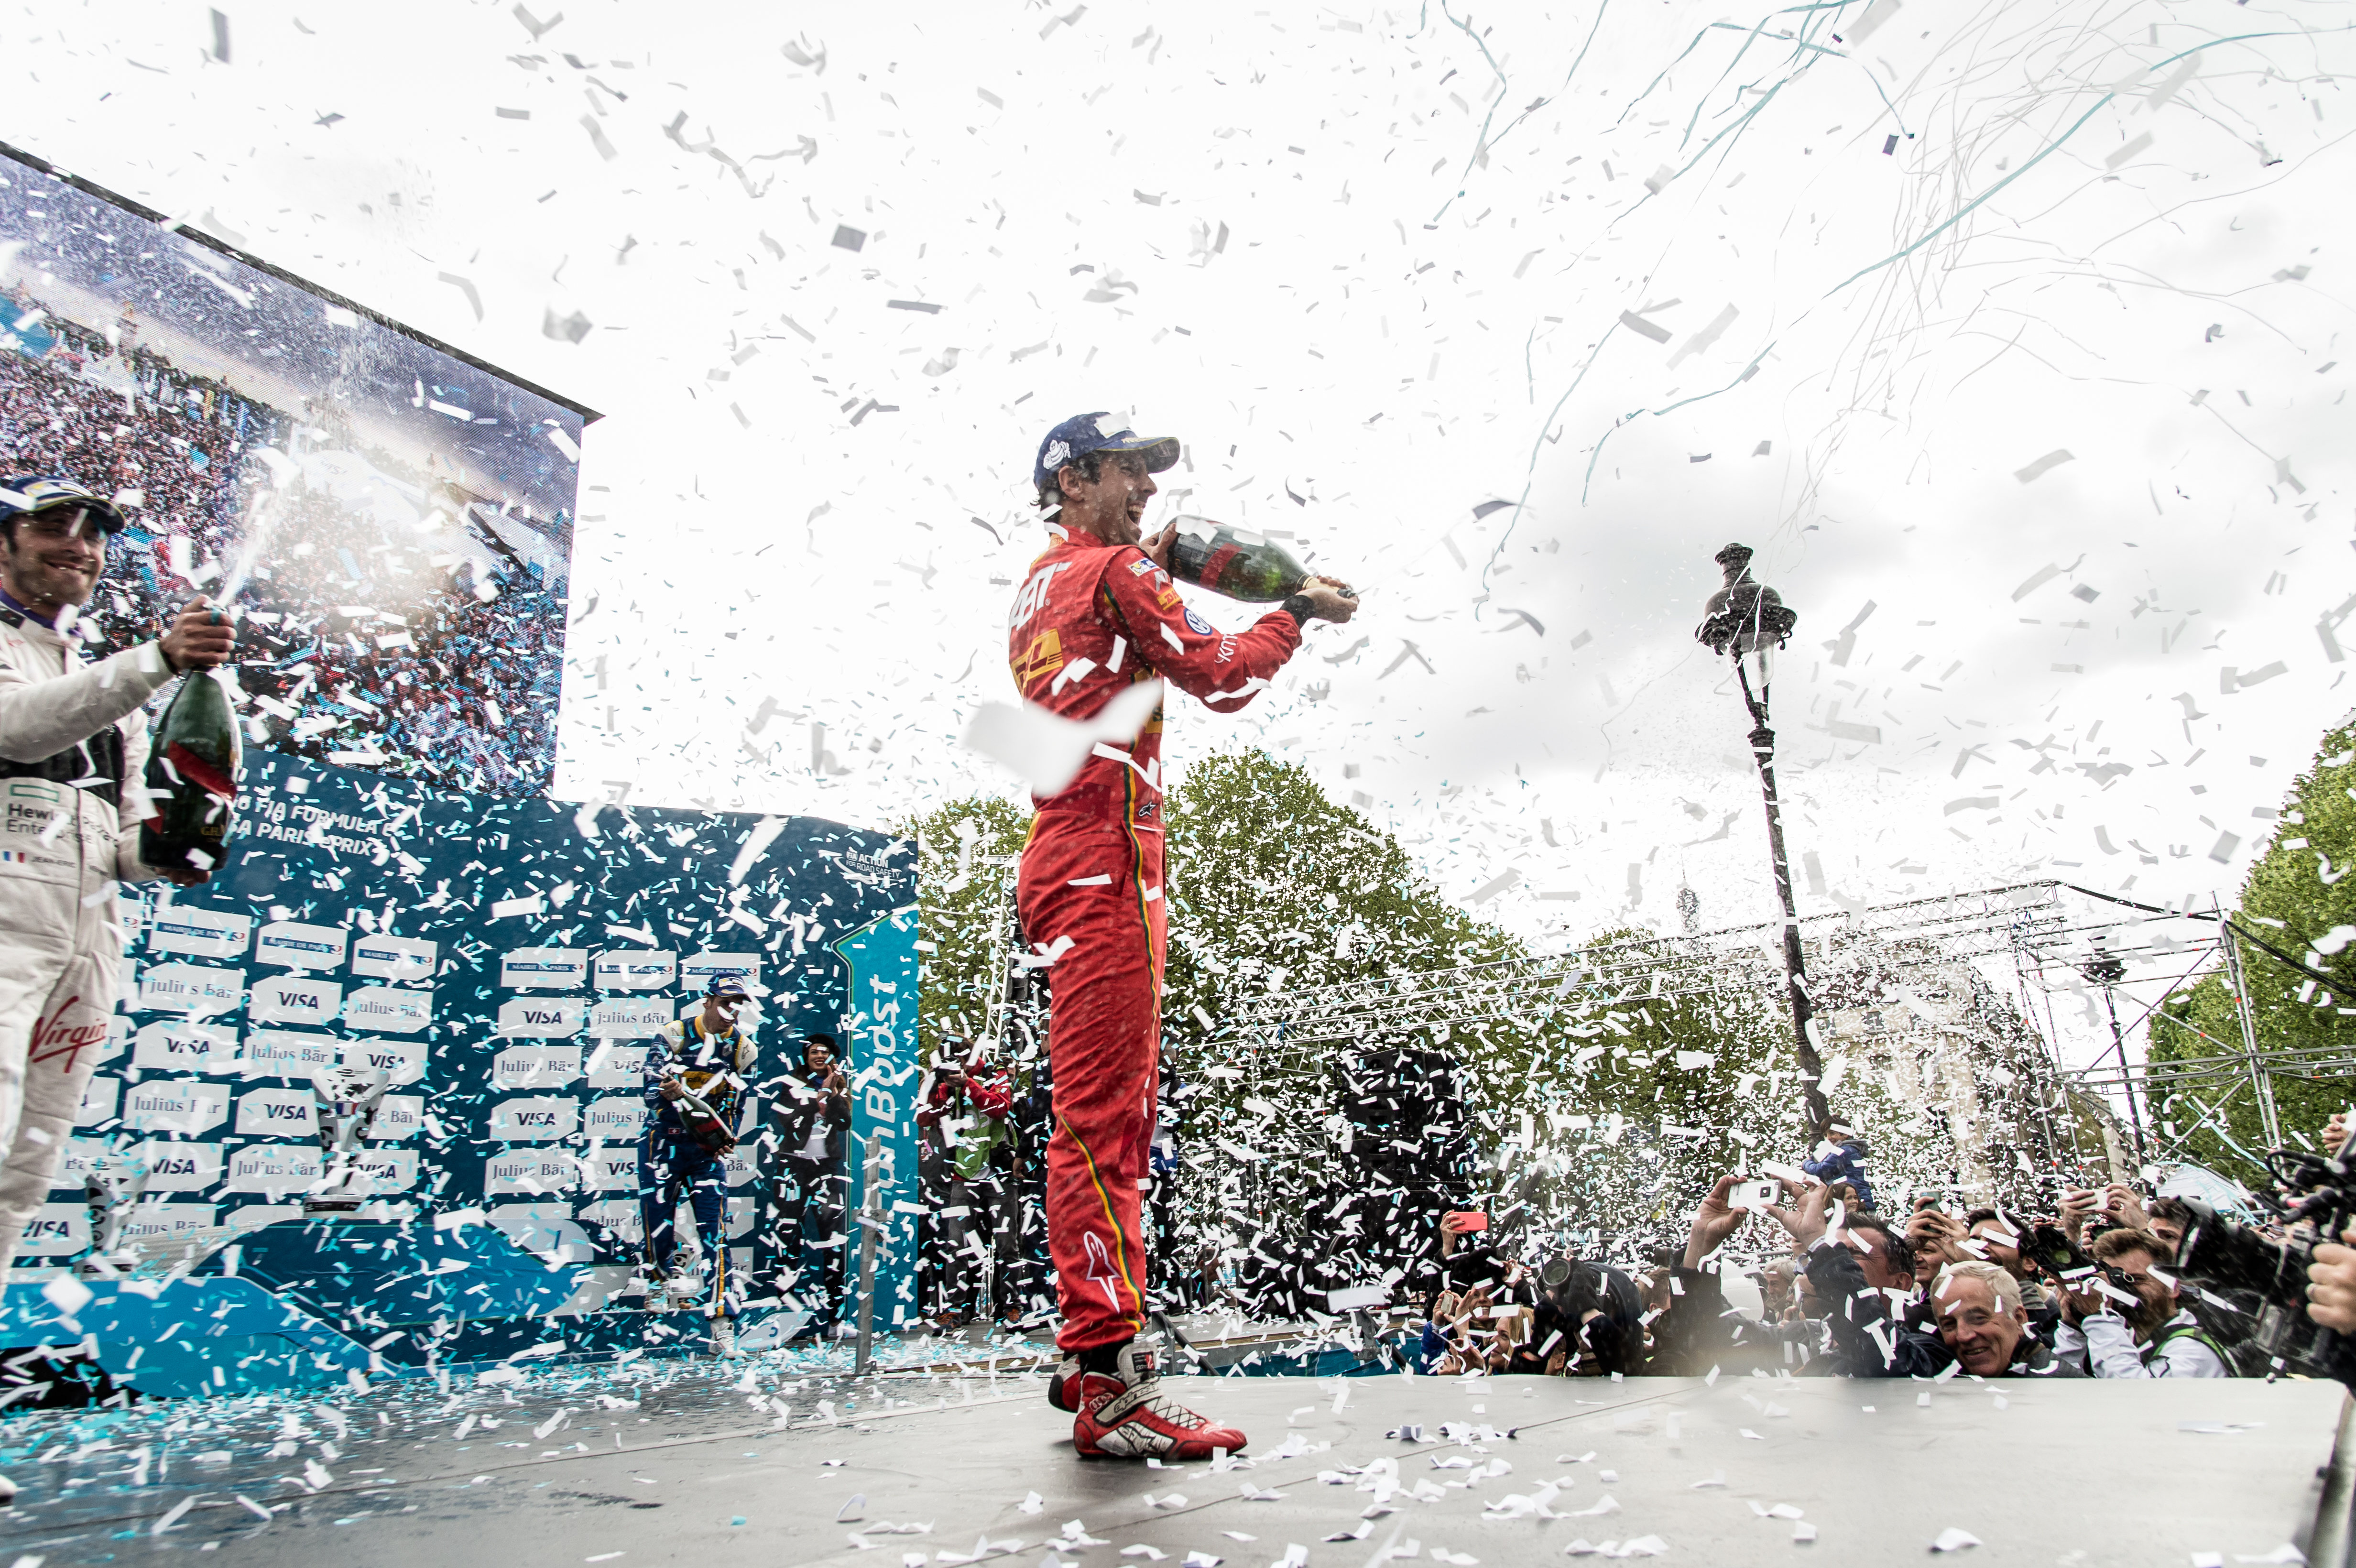 MUMM is the official champagne sponsor for Formula E